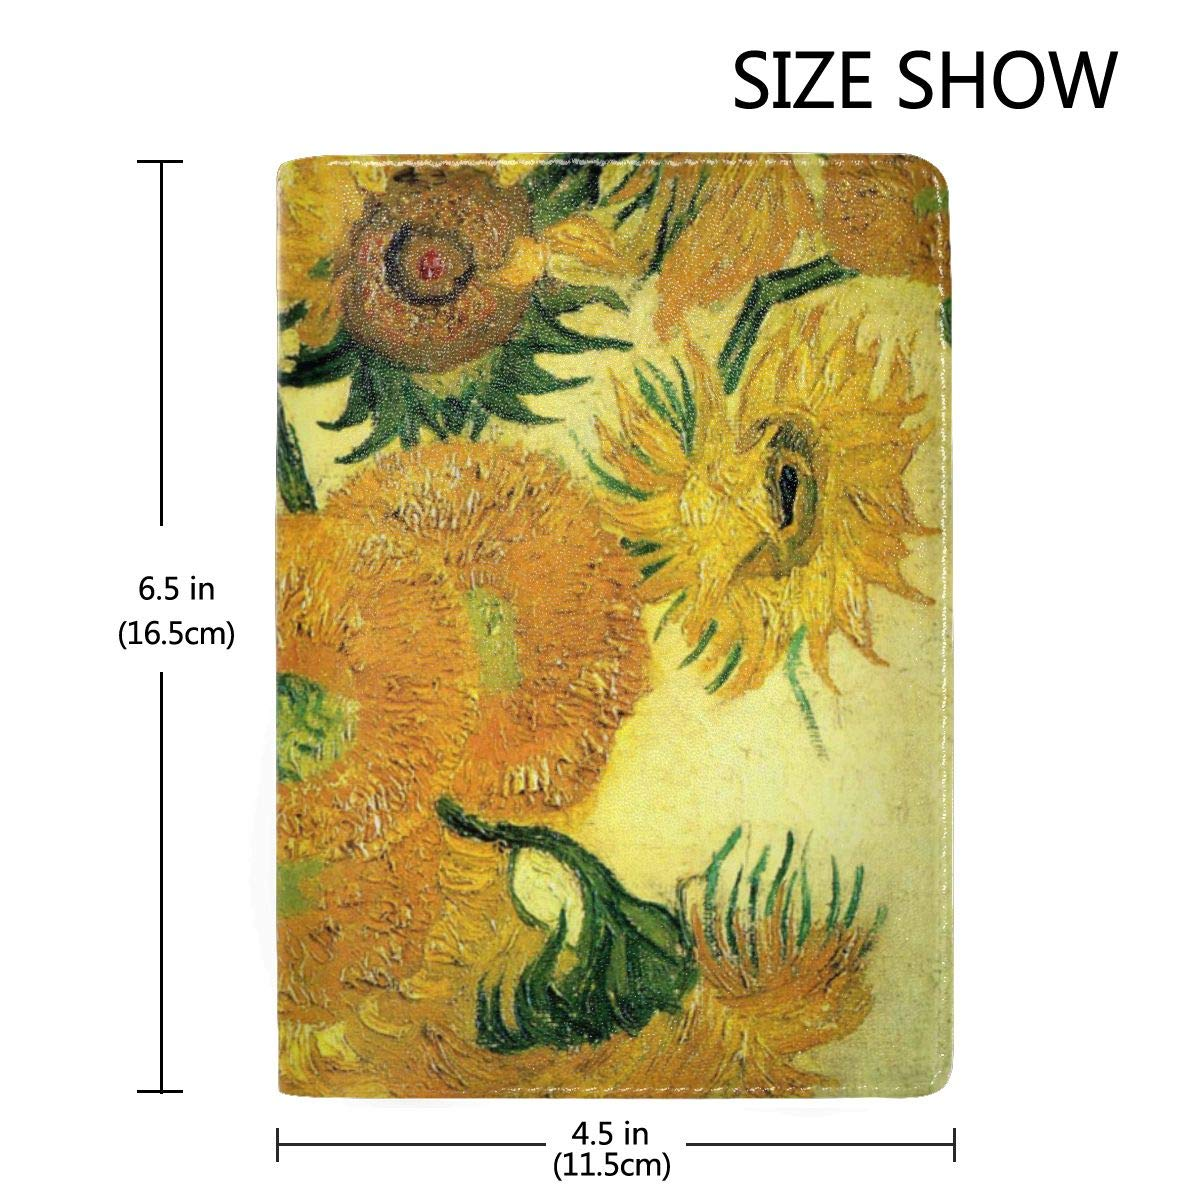 Van Gogh Sunflowers Fashion Leather Passport Holder Cover Case Travel Wallet 6.5 In